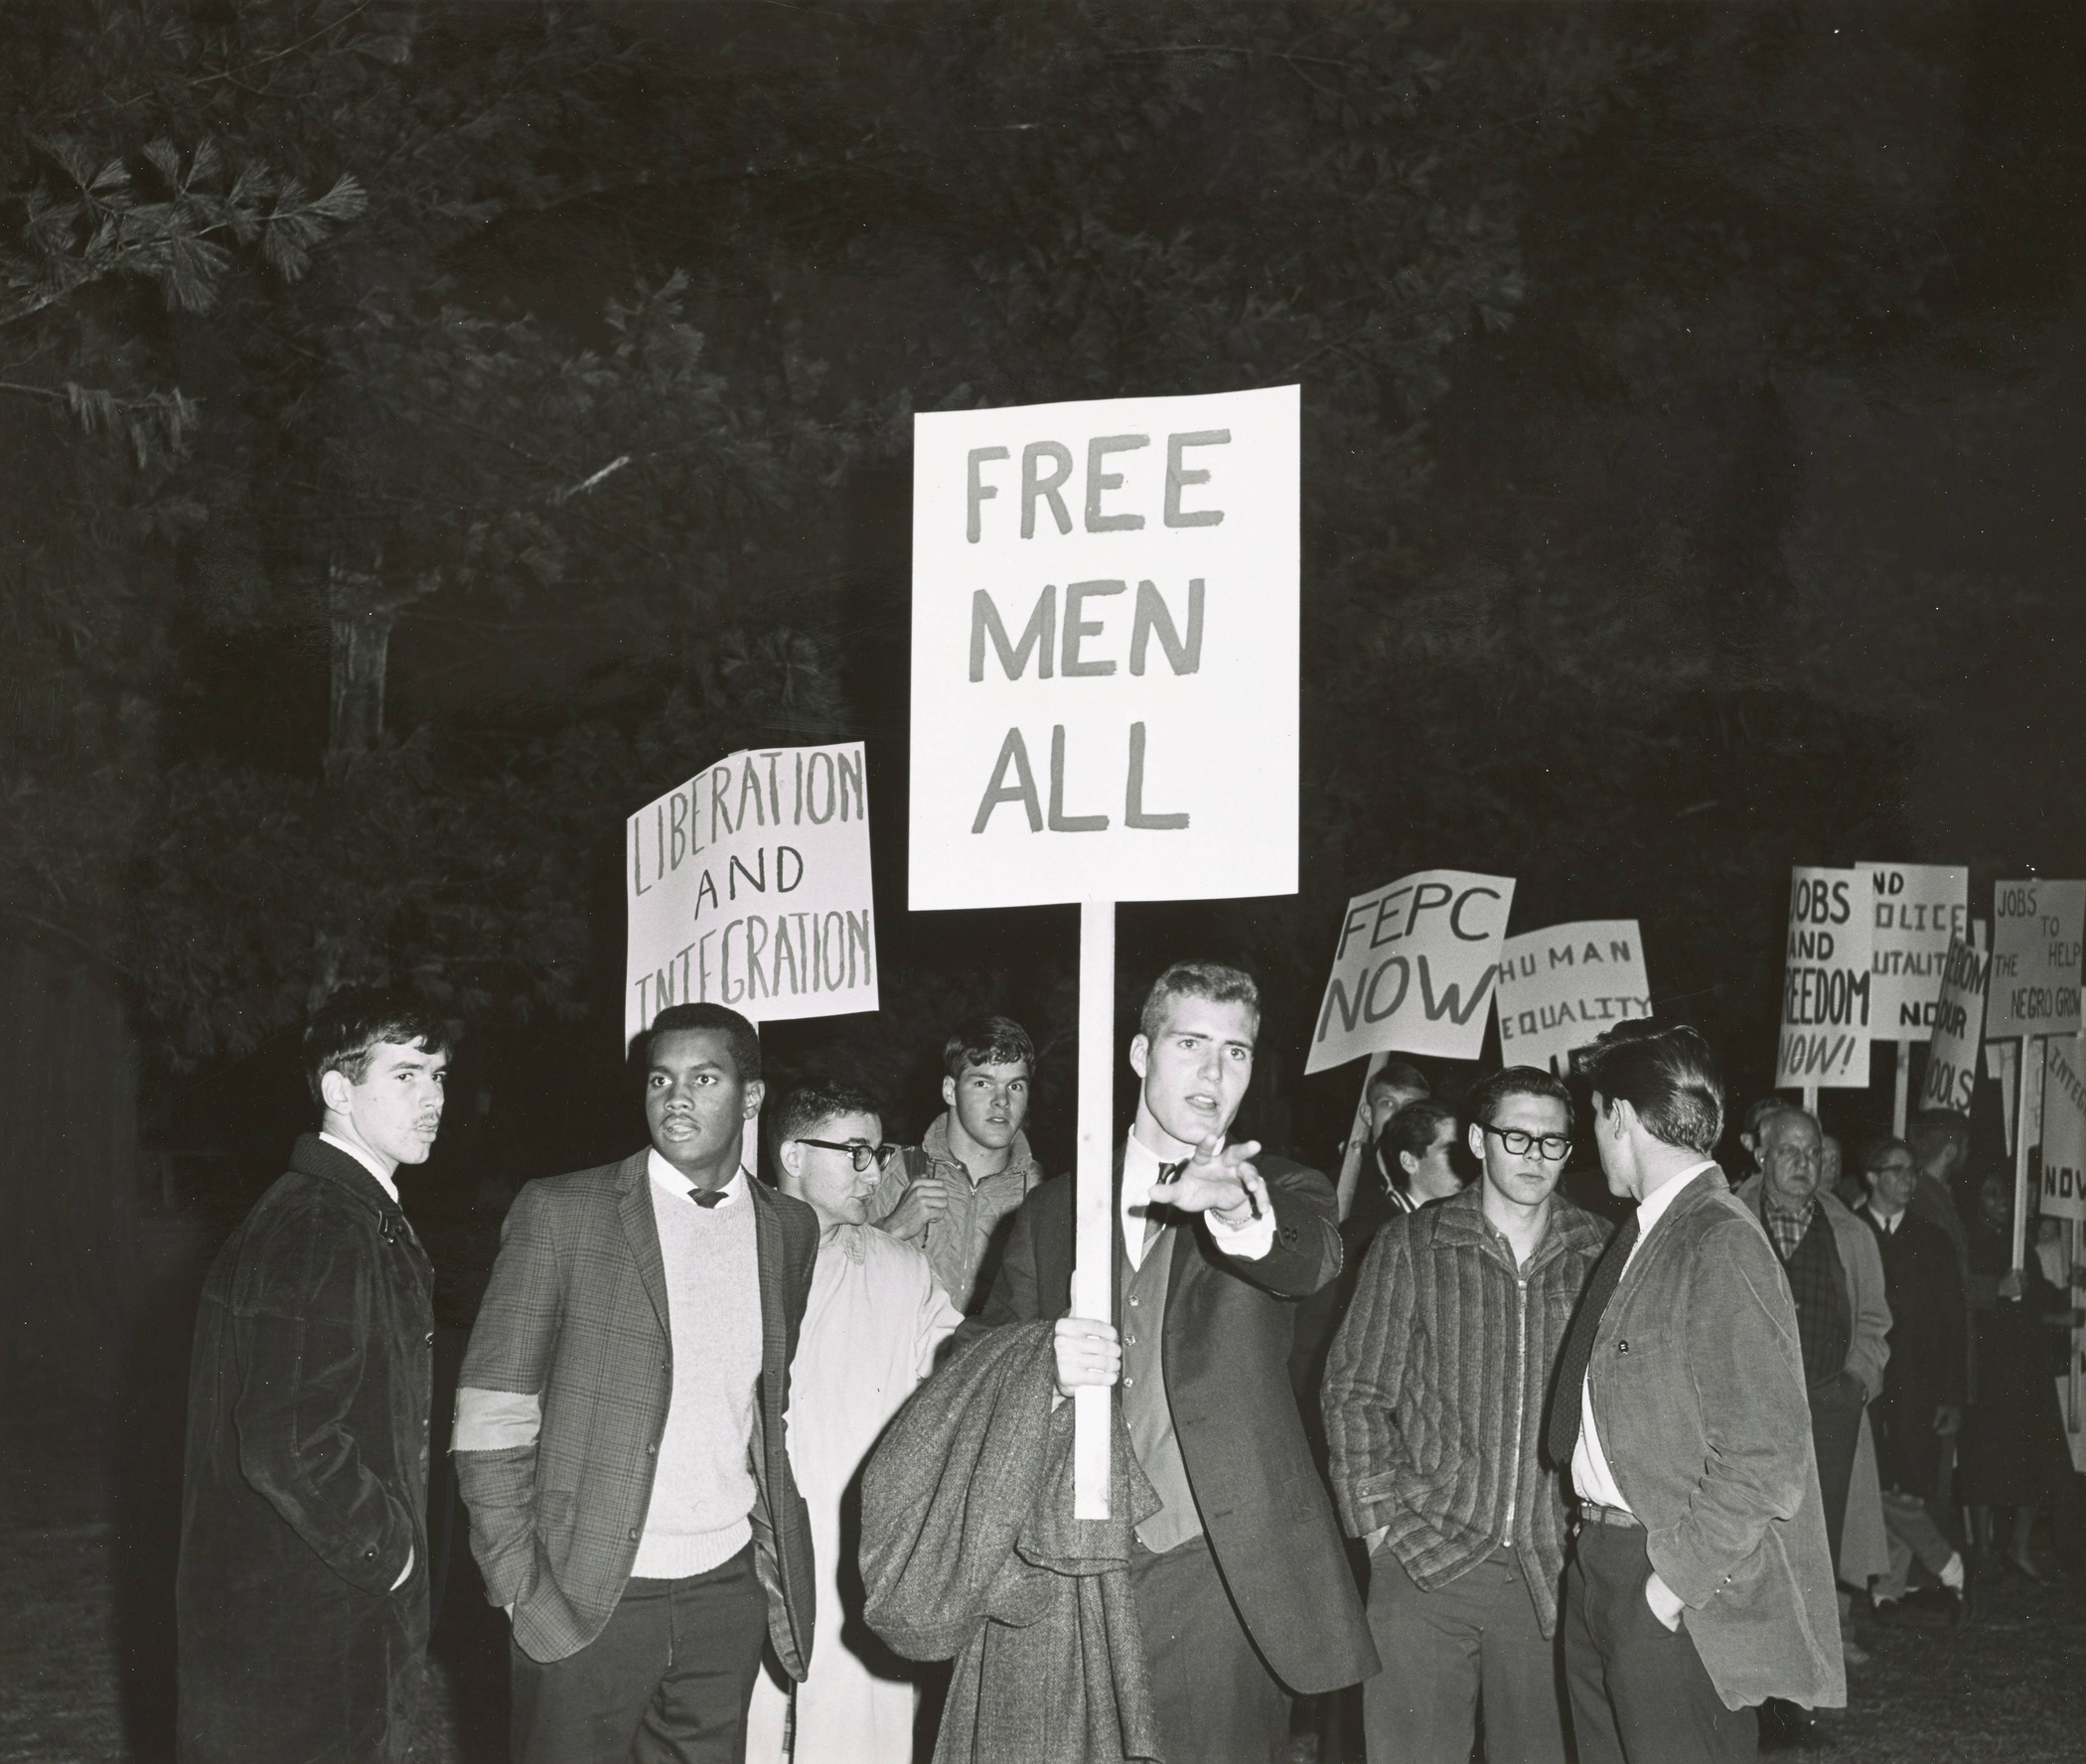 "This photograph, captured outside of Leverone Field House during Alabama Governor George Wallace's visit to Dartmouth on November 5, 1963, depicts Dartmouth students (including Richard Joseph '65) and Upper Valley community members protesting the segregationist's policies and views on race. Signs reading ""liberation and integration"" and ""free men all"" are raised in response to the politician's recent inaugural address, in which Wallace stated, ""segregation now, segregation tomorrow, segregation forever."" Additional signs reference FEPC, or the Fair Employment Practices Committee, which was established by President Franklin D. Roosevelt in 1941 to help prevent discrimination against African-Americans in defense and government jobs."